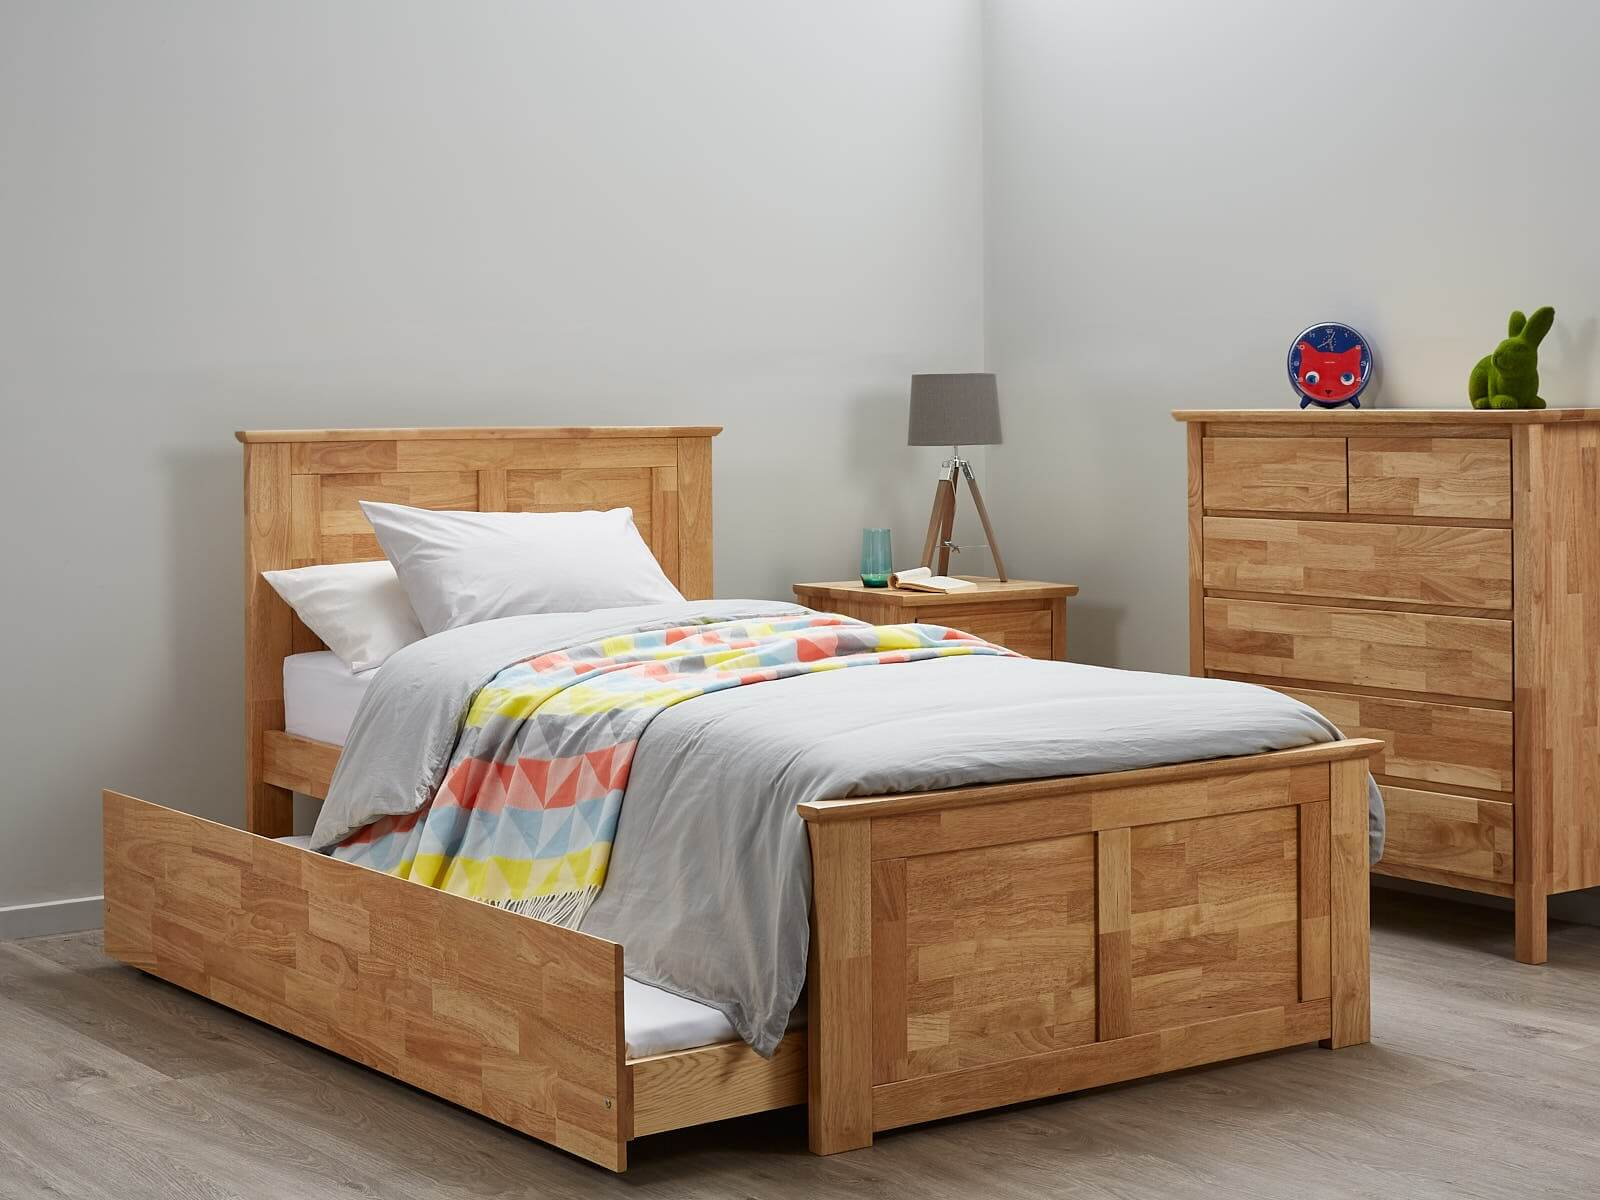 15 Amazing Diy Bed Frame Designs Because Comfort Matters